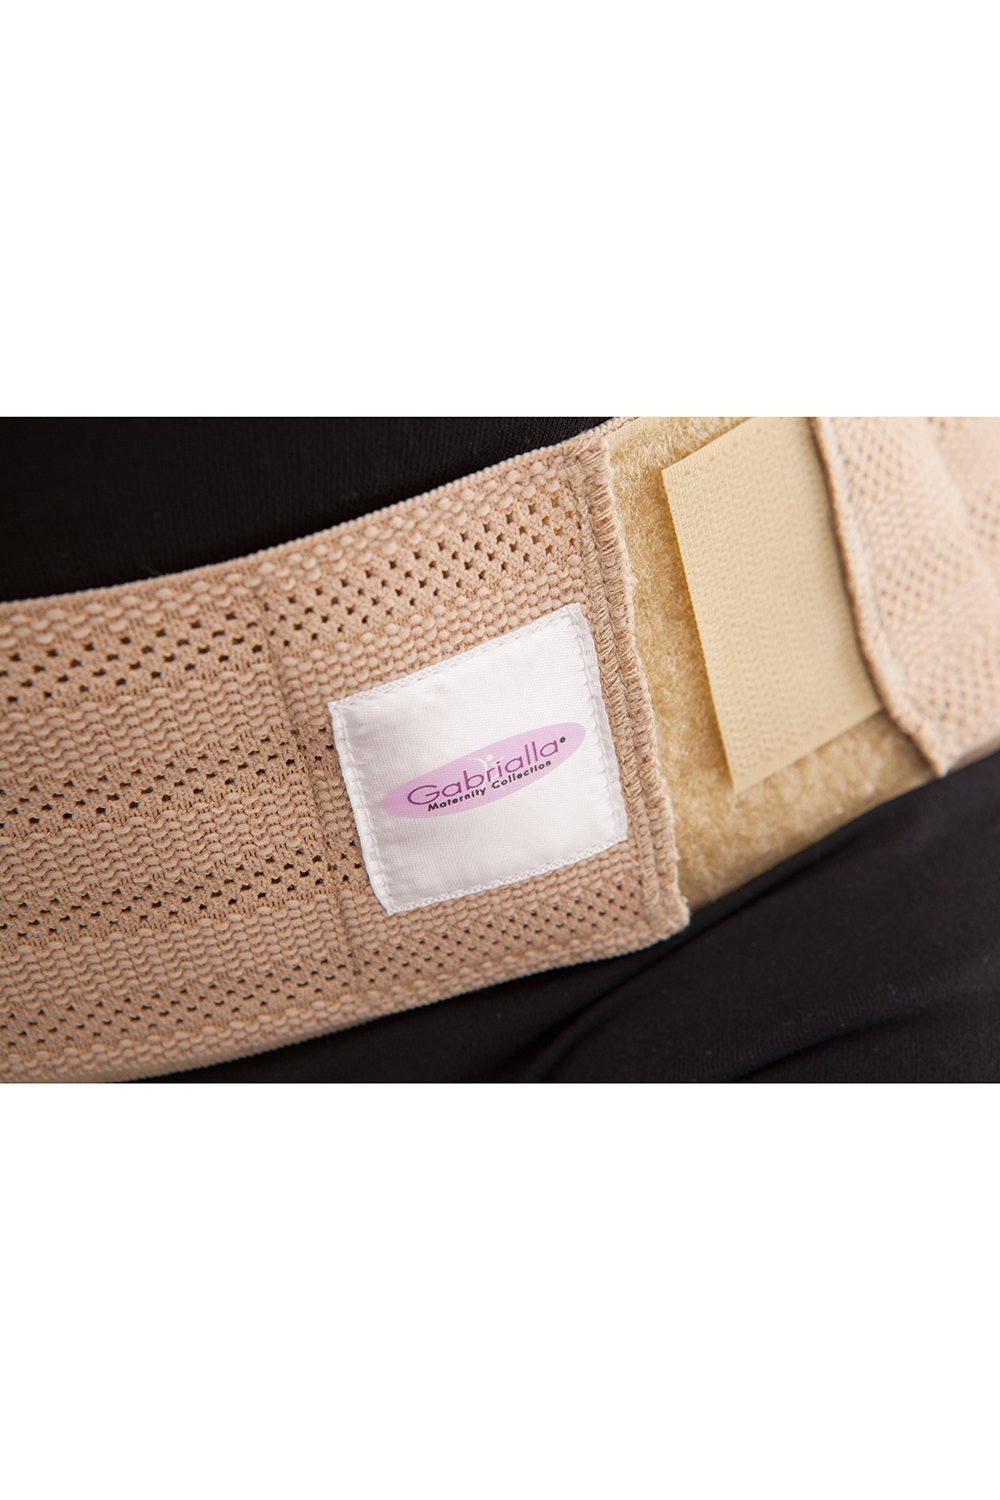 Maternity Belt - Light Support 3 inches (MS-14) - Gabrialla